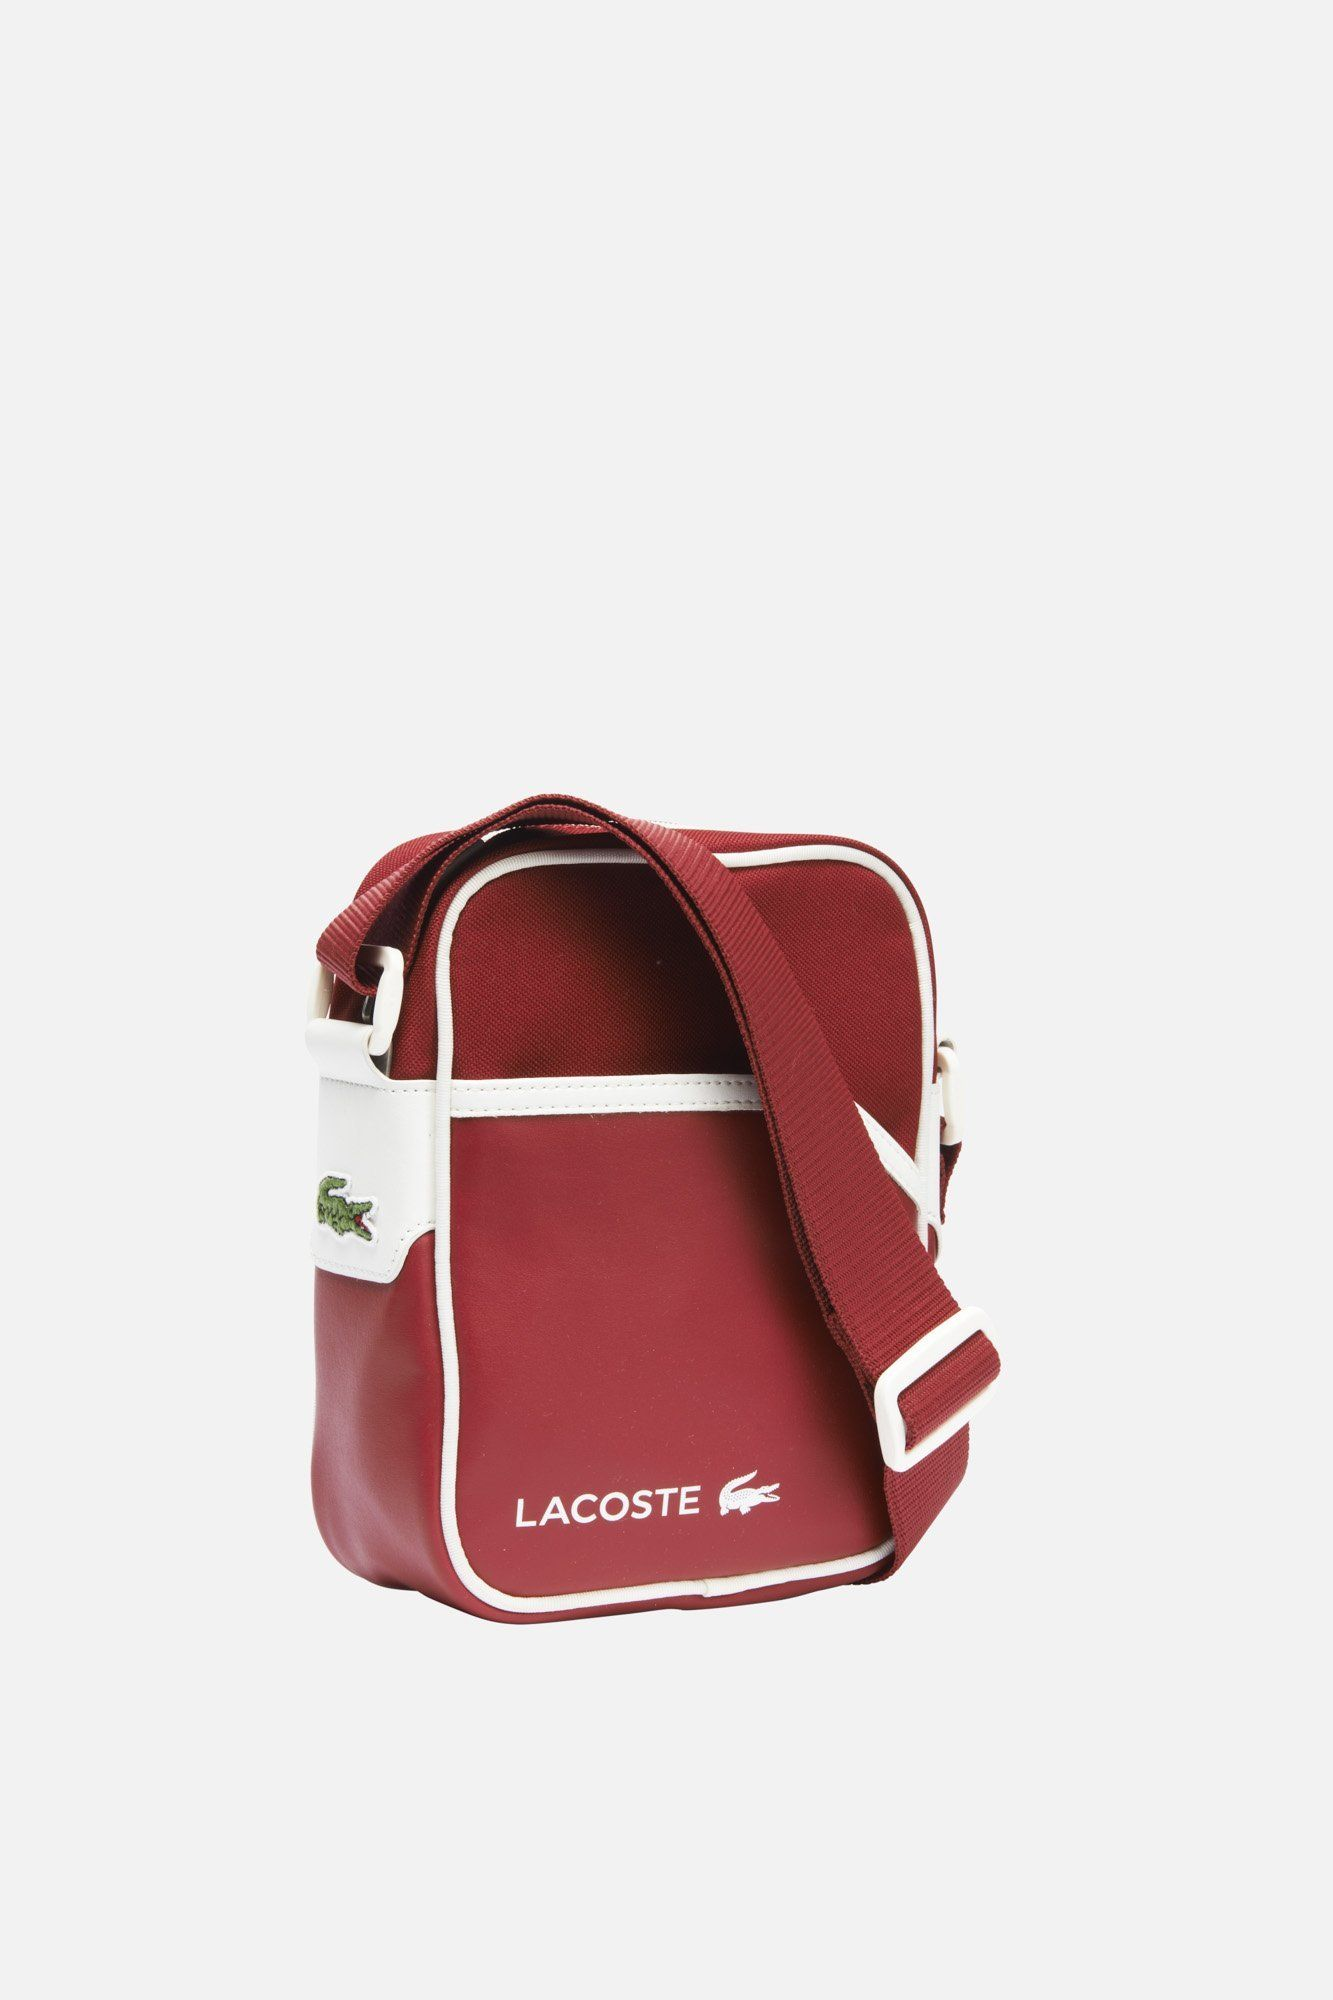 d4cb707d6 Lacoste Small Vertical Camera Bag   Bags   Wallets